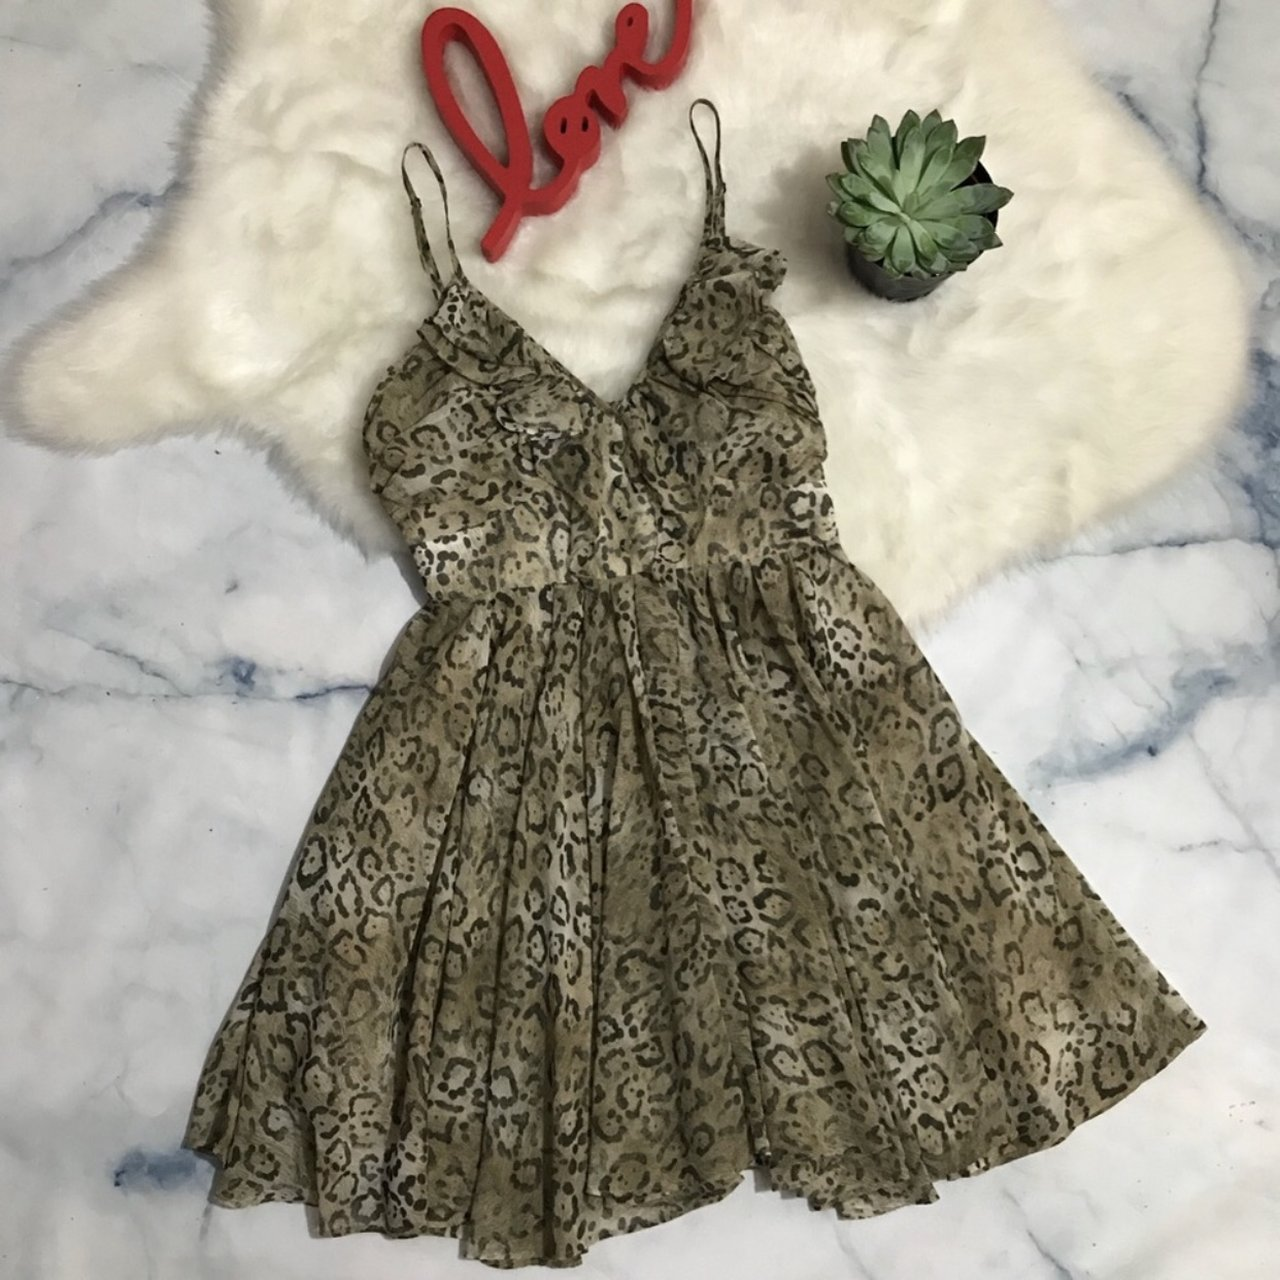 0ef4e2fdd1 FREE DRESS Pictured Leopard Print Skater Dress from Guess. a - Depop